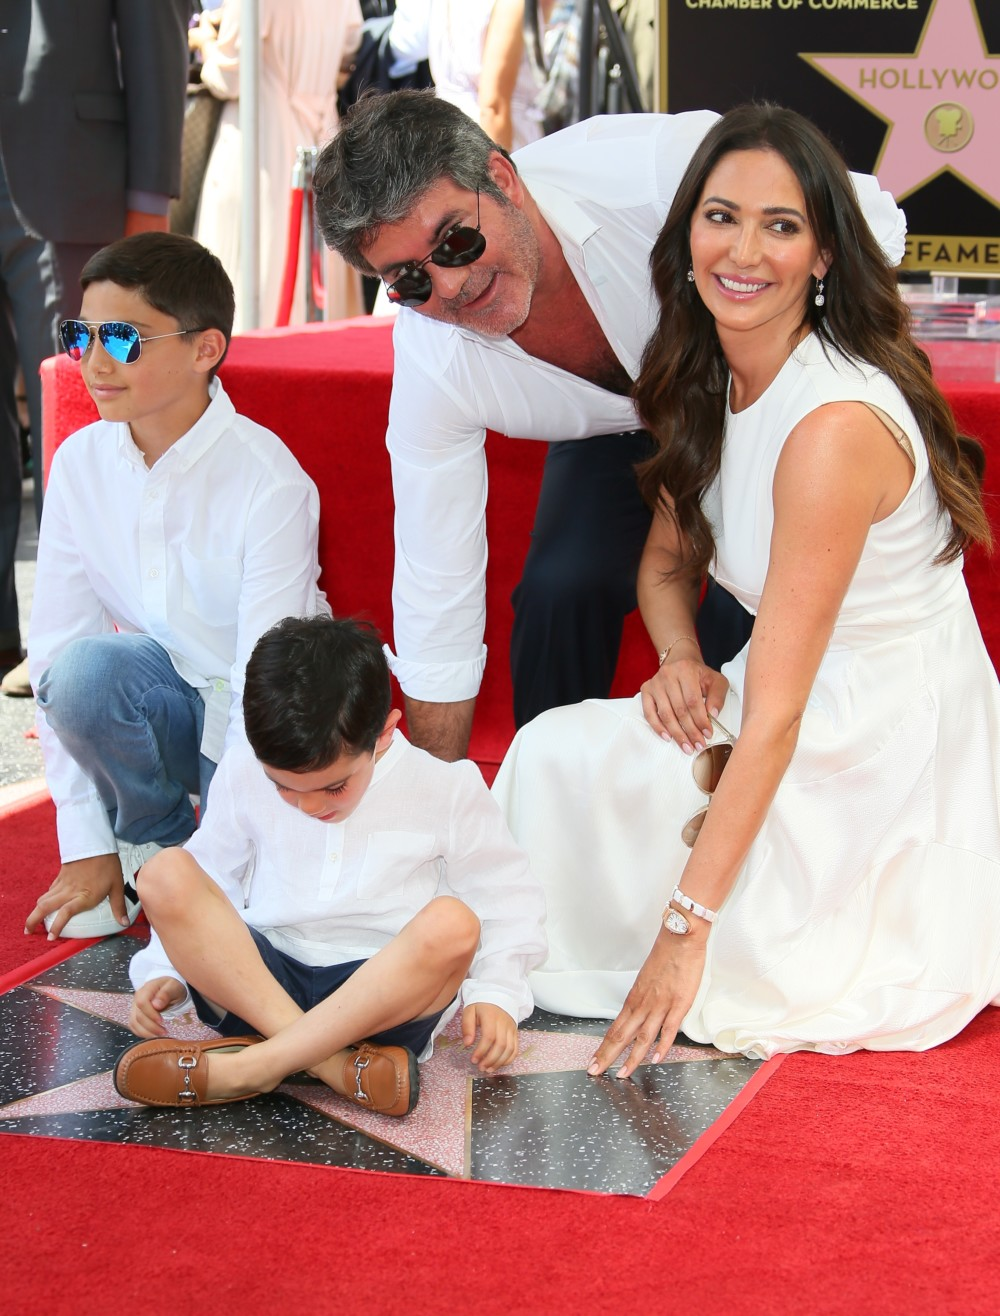 Simon Cowell Gets A Star On Hollywood Walk Of Fame